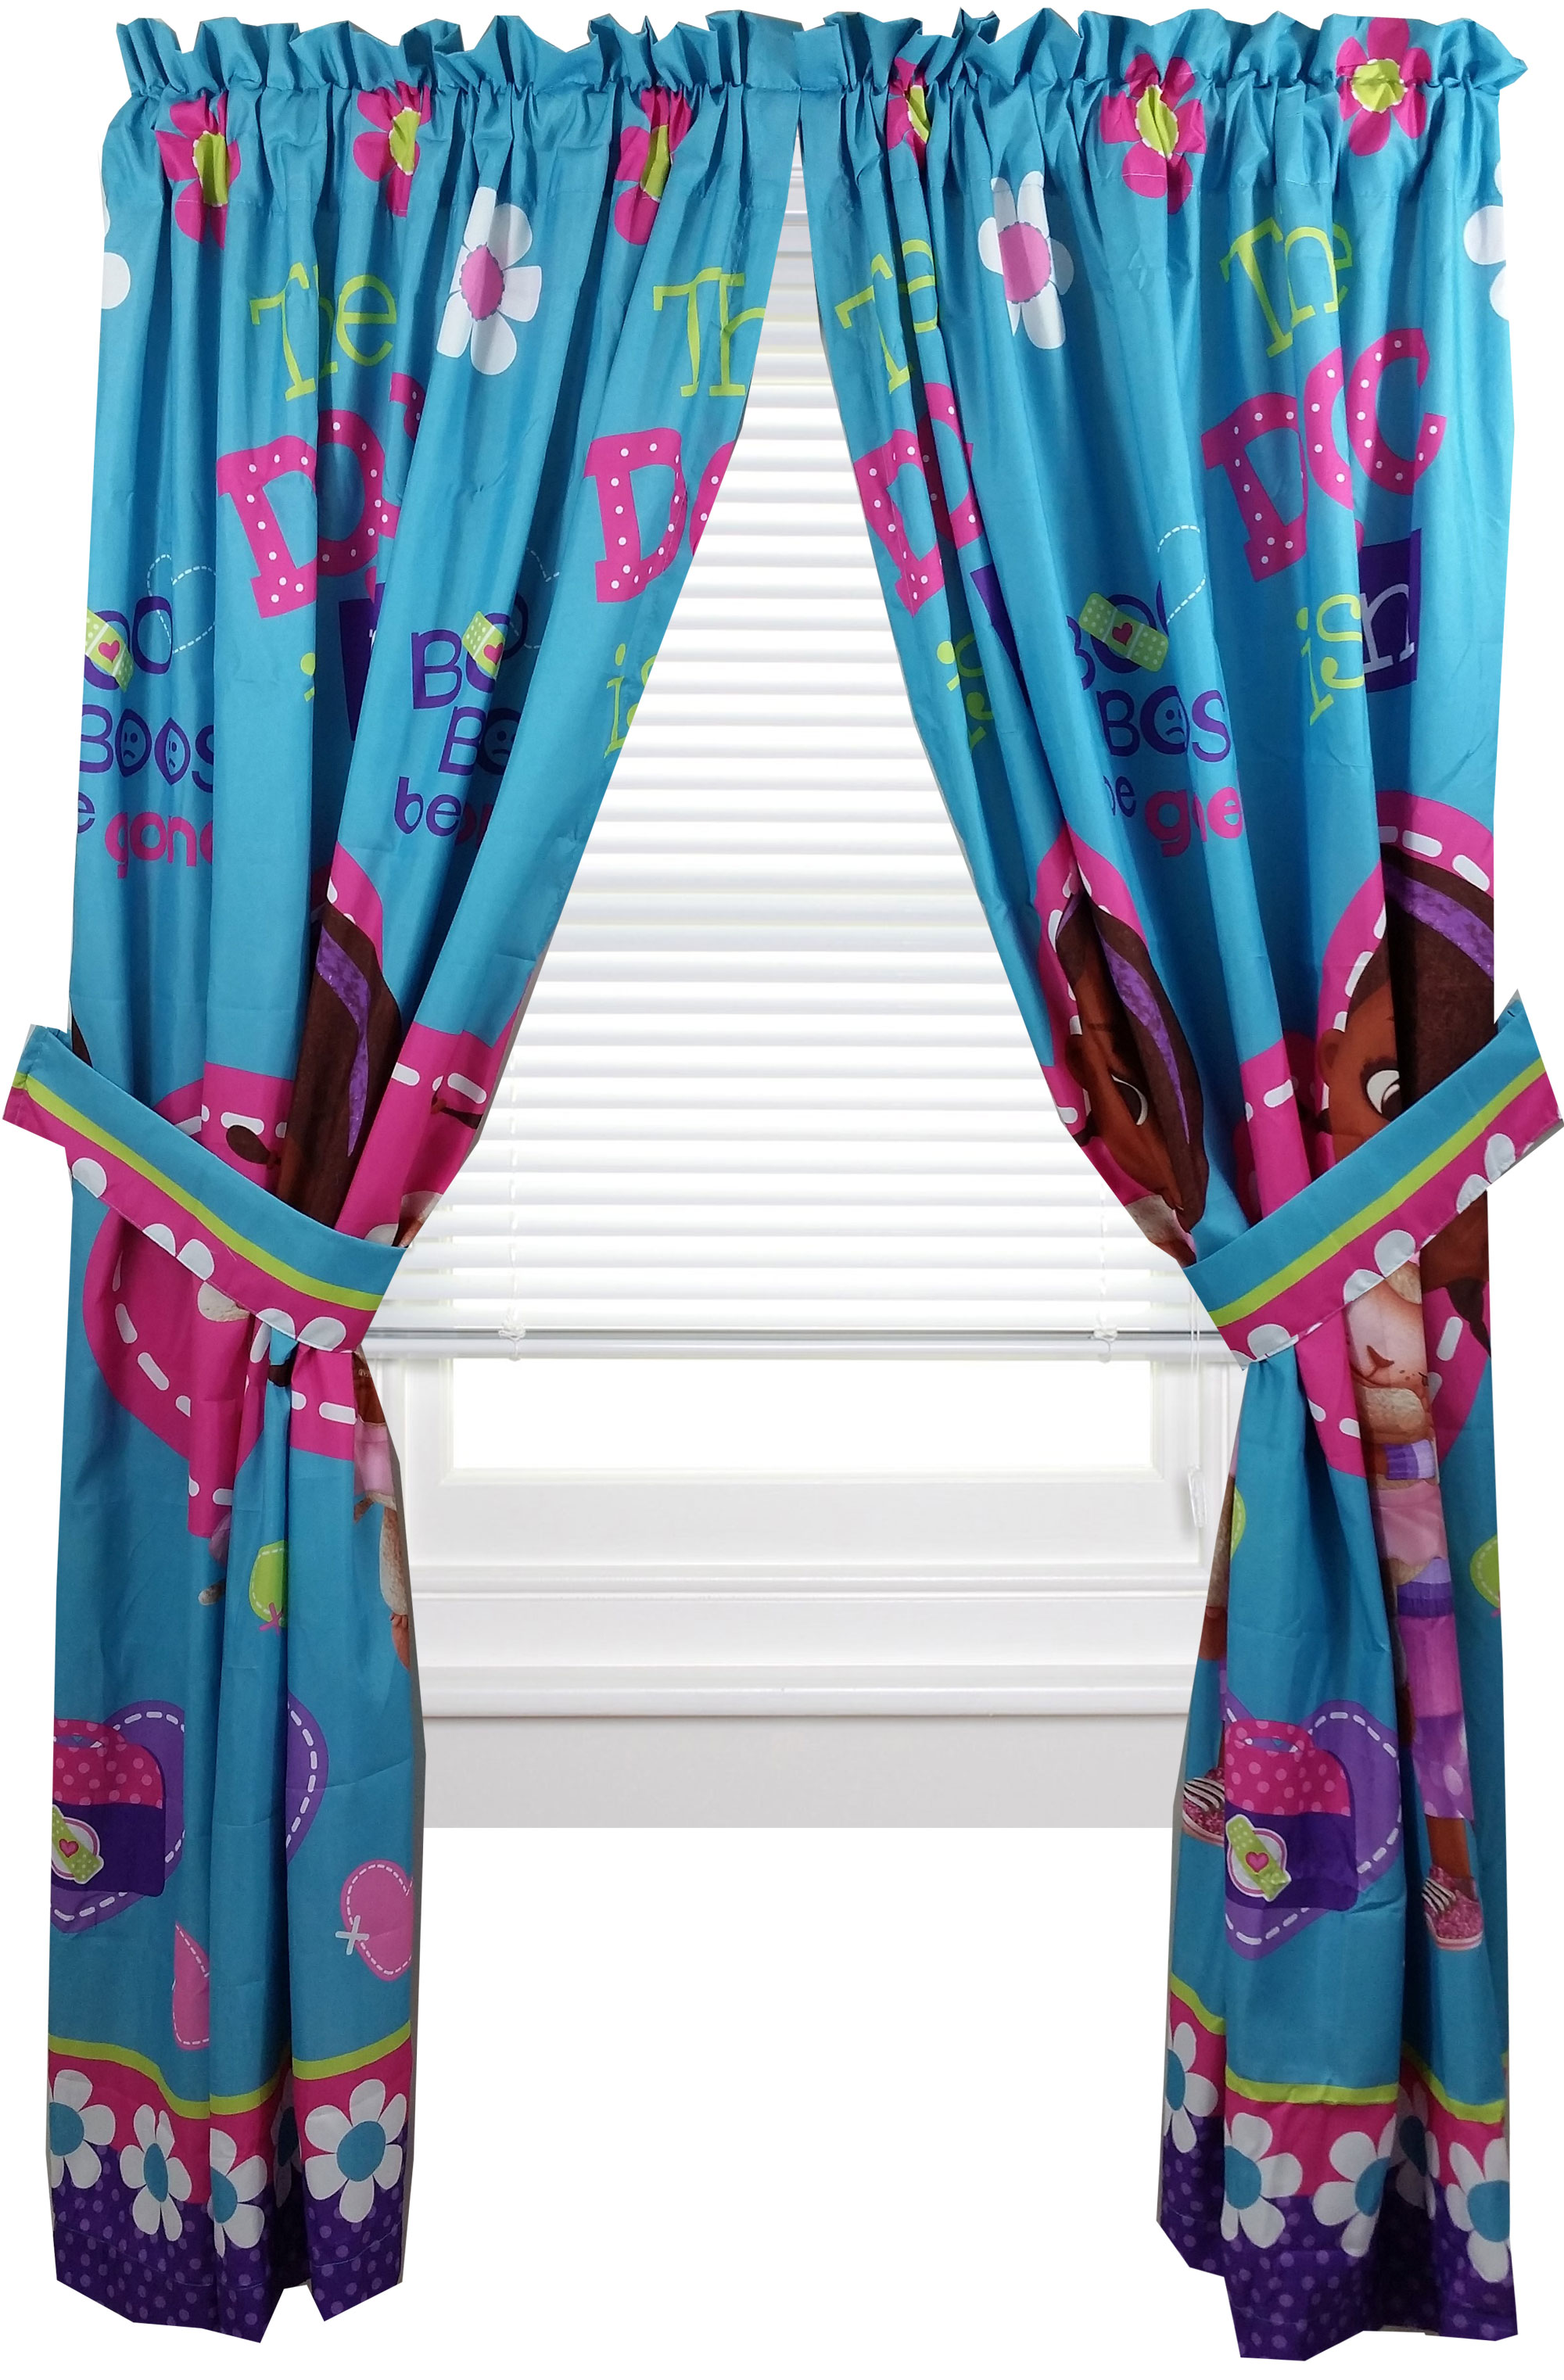 disney doc mcstuffins window panels curtains drapes 42in x 63in set of 2 walmartcom